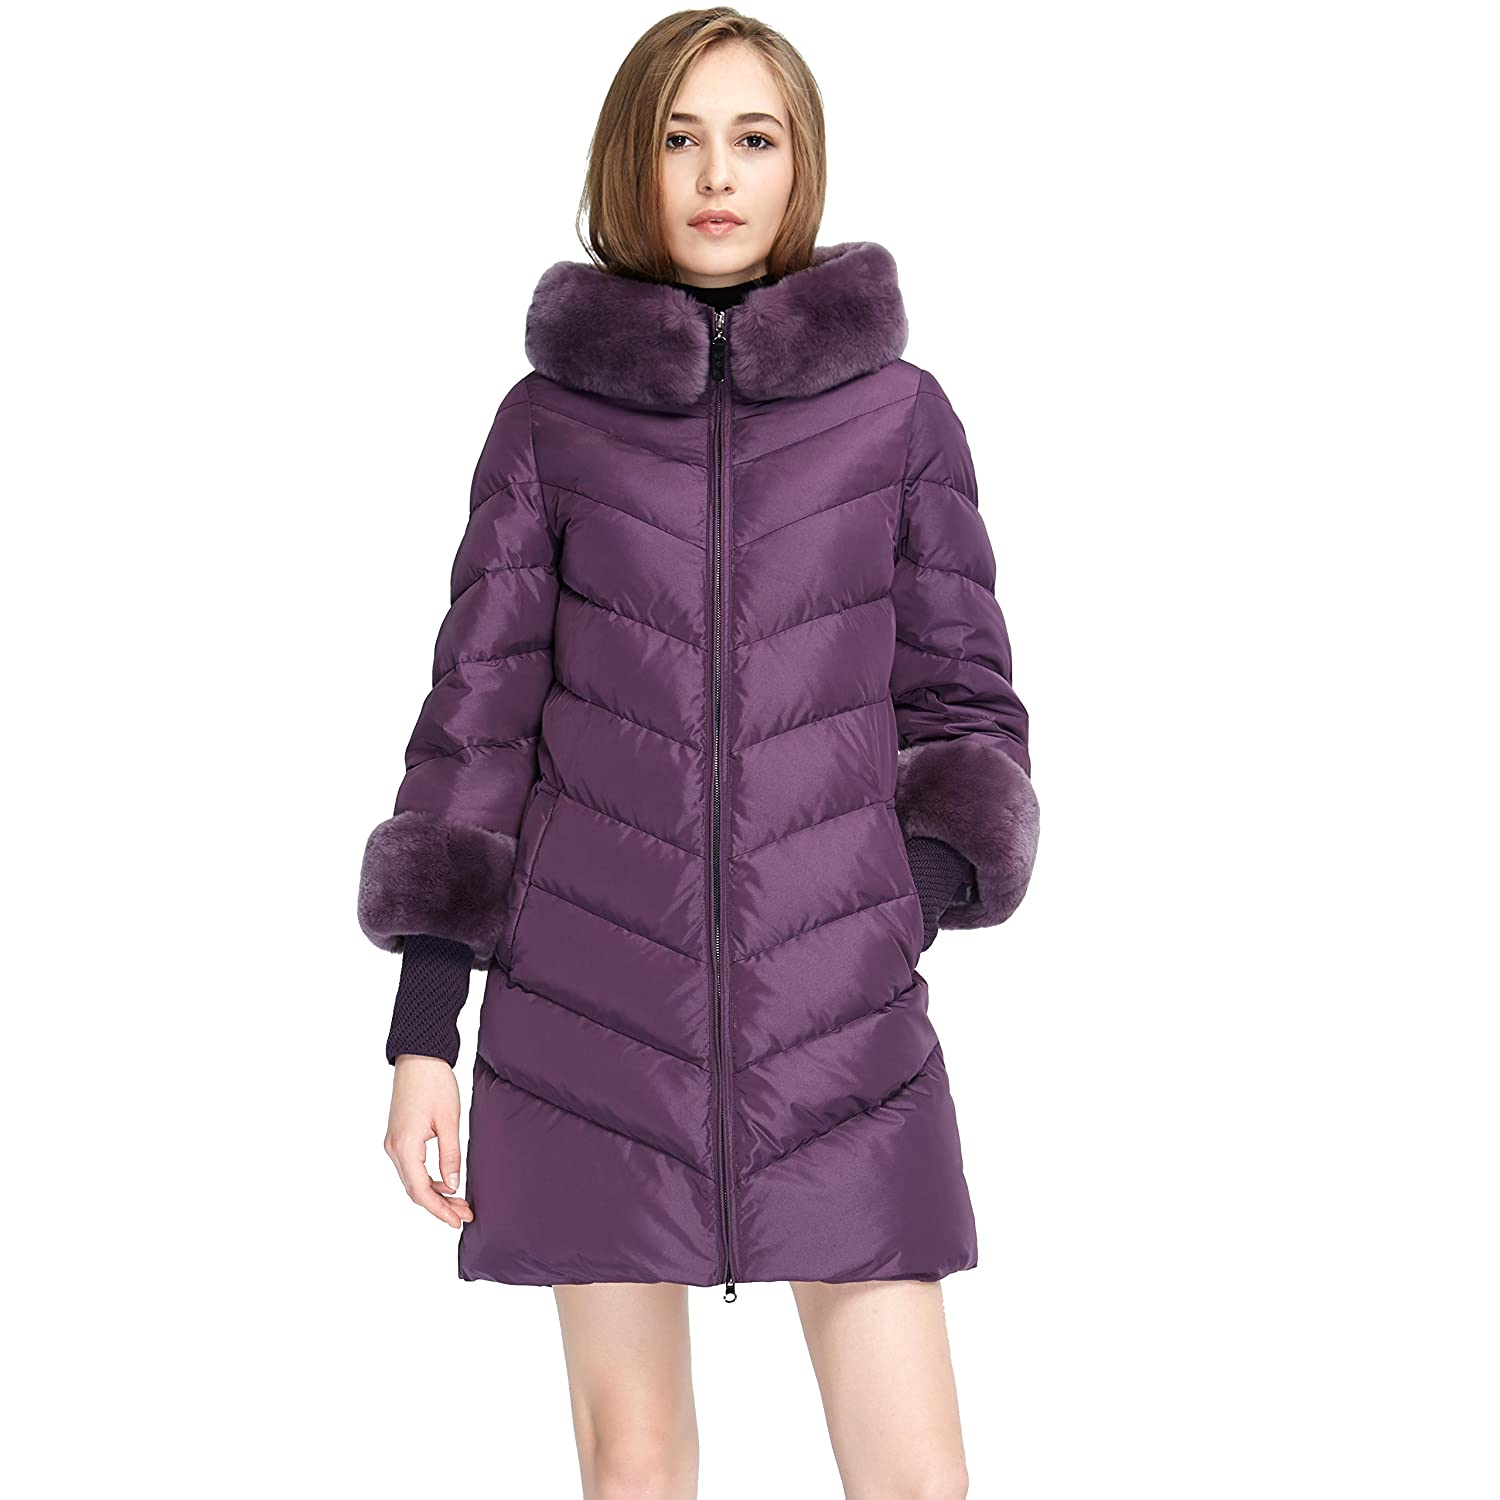 Women's Winter Rabbit Fur Hood Slim Fit Down Parka Jacket